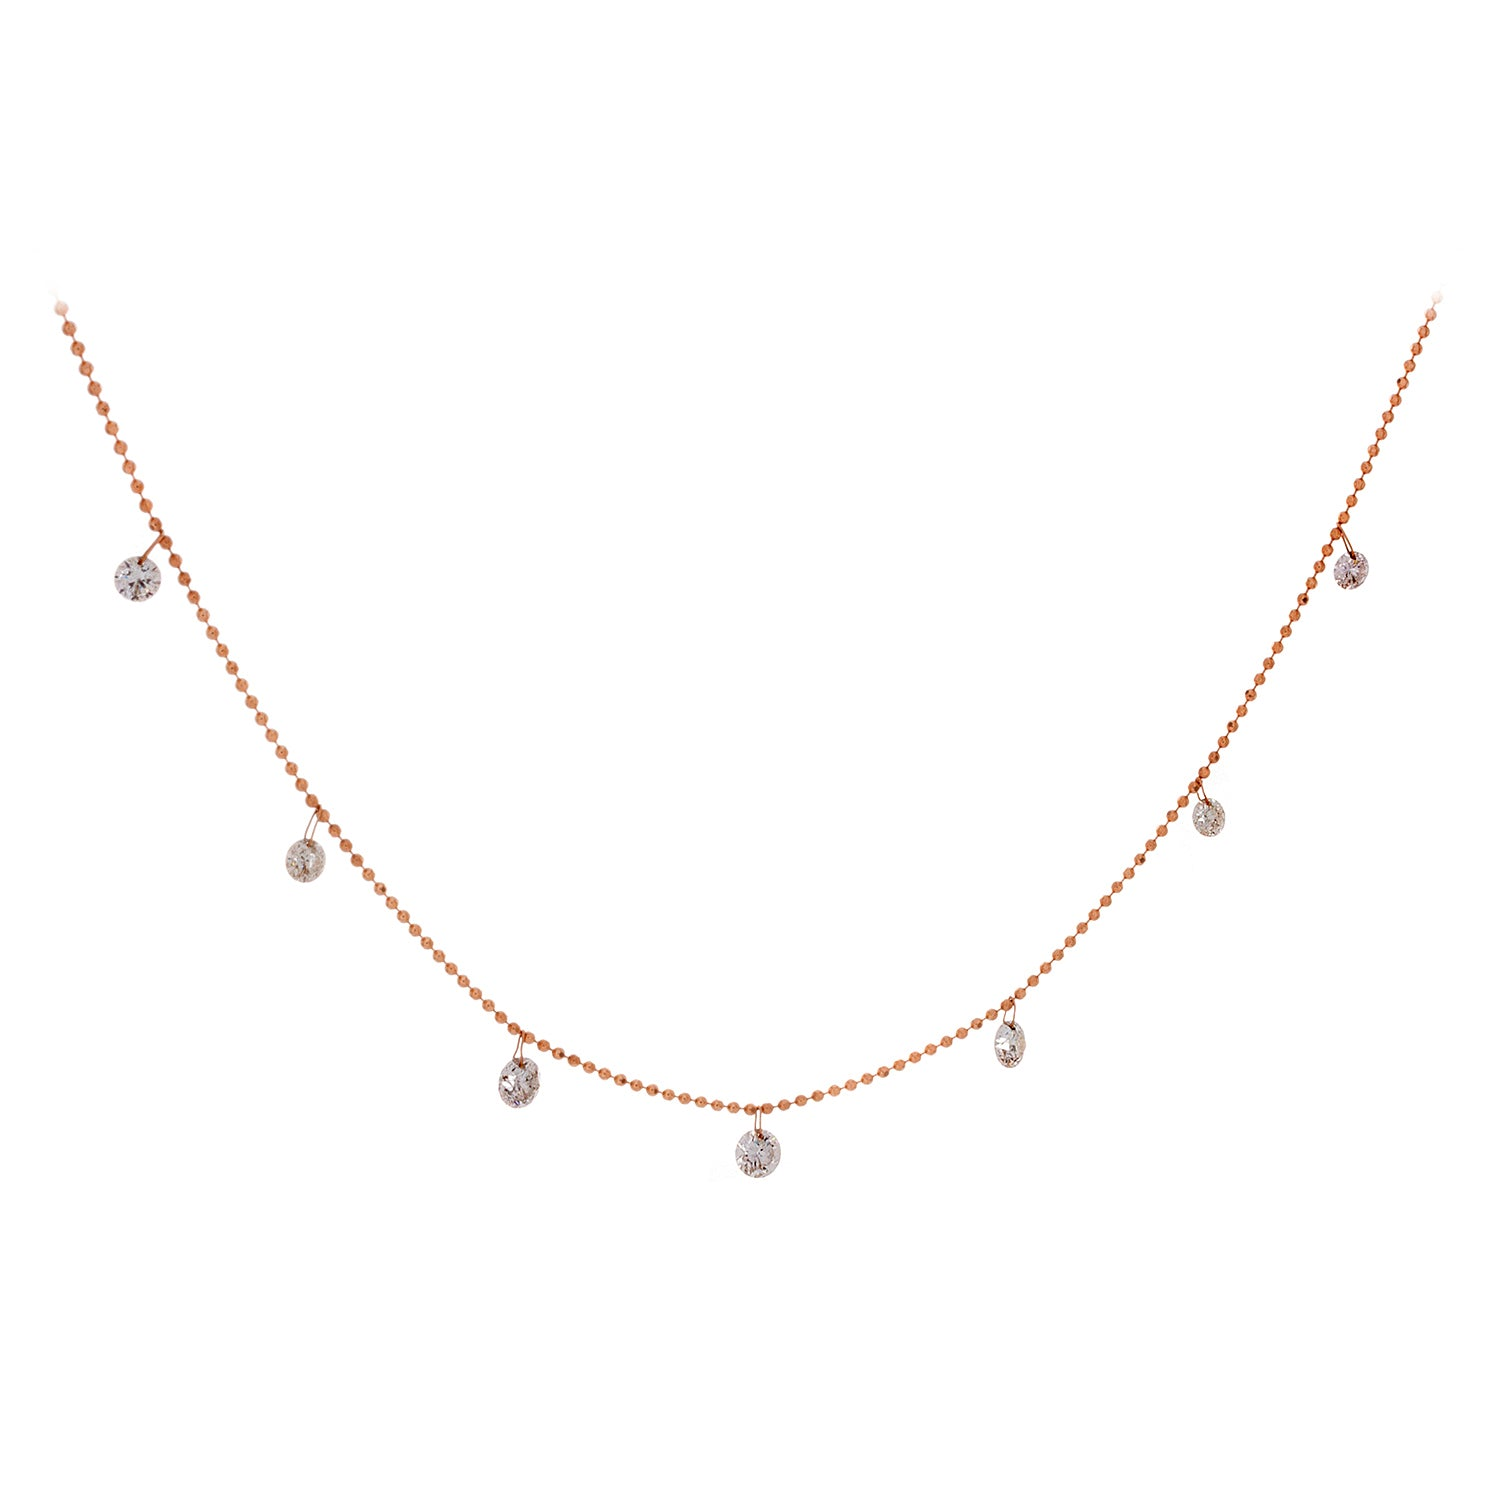 Floating Diamonds & 18K Rose Gold Necklace - SOLD